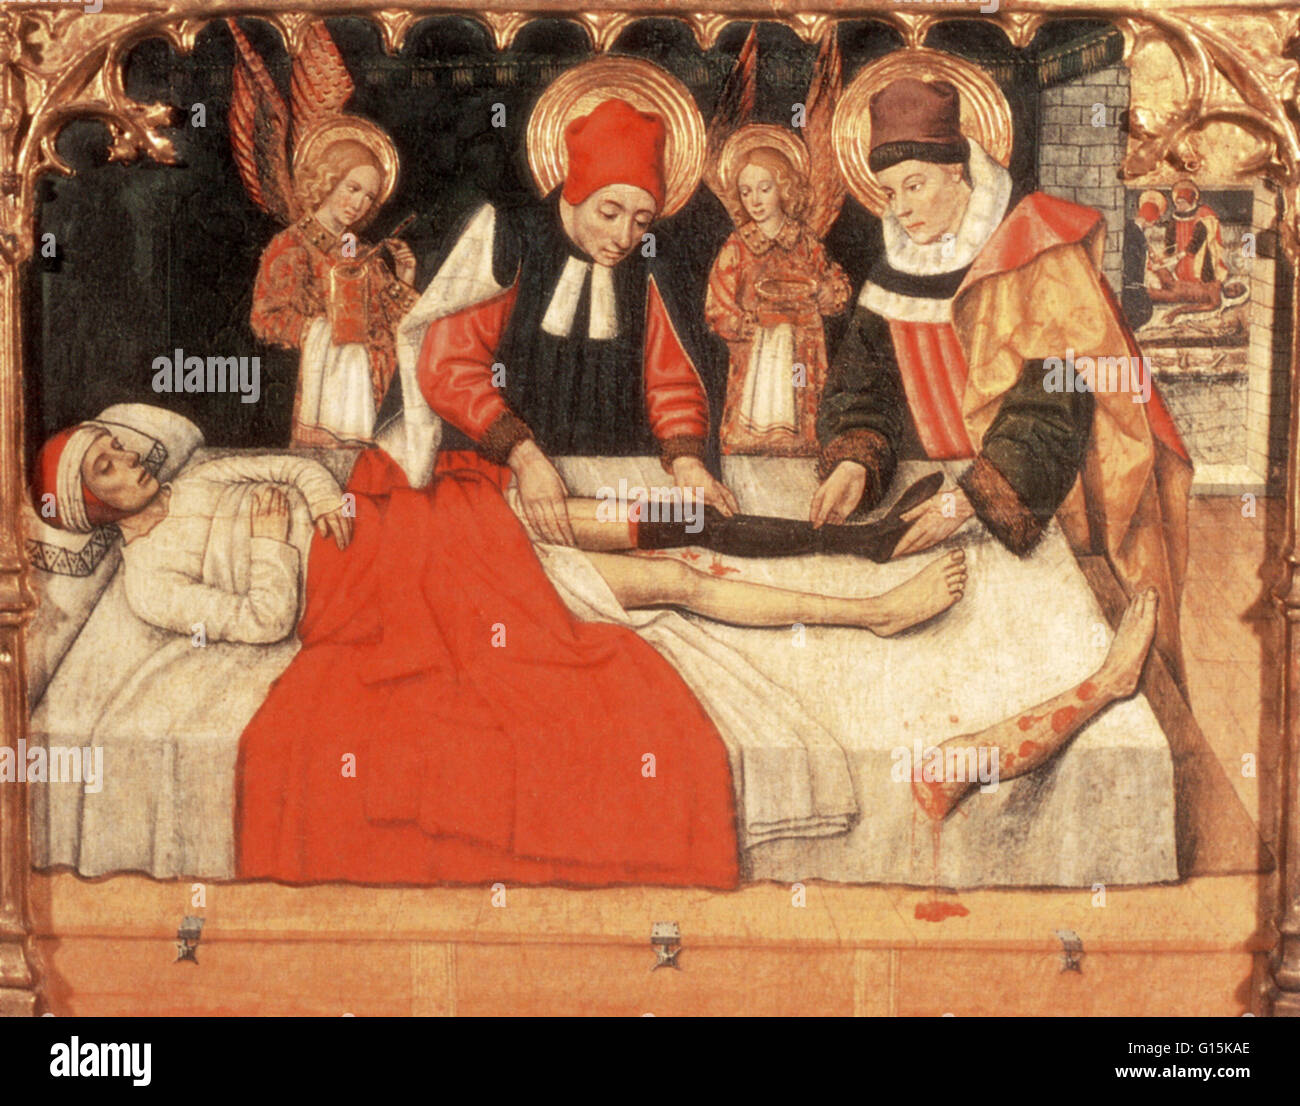 St. Cosmas and St. Damian, patron saints of medicine, grafting the leg of an Ethiopian gladiator onto a Christian - Stock Image